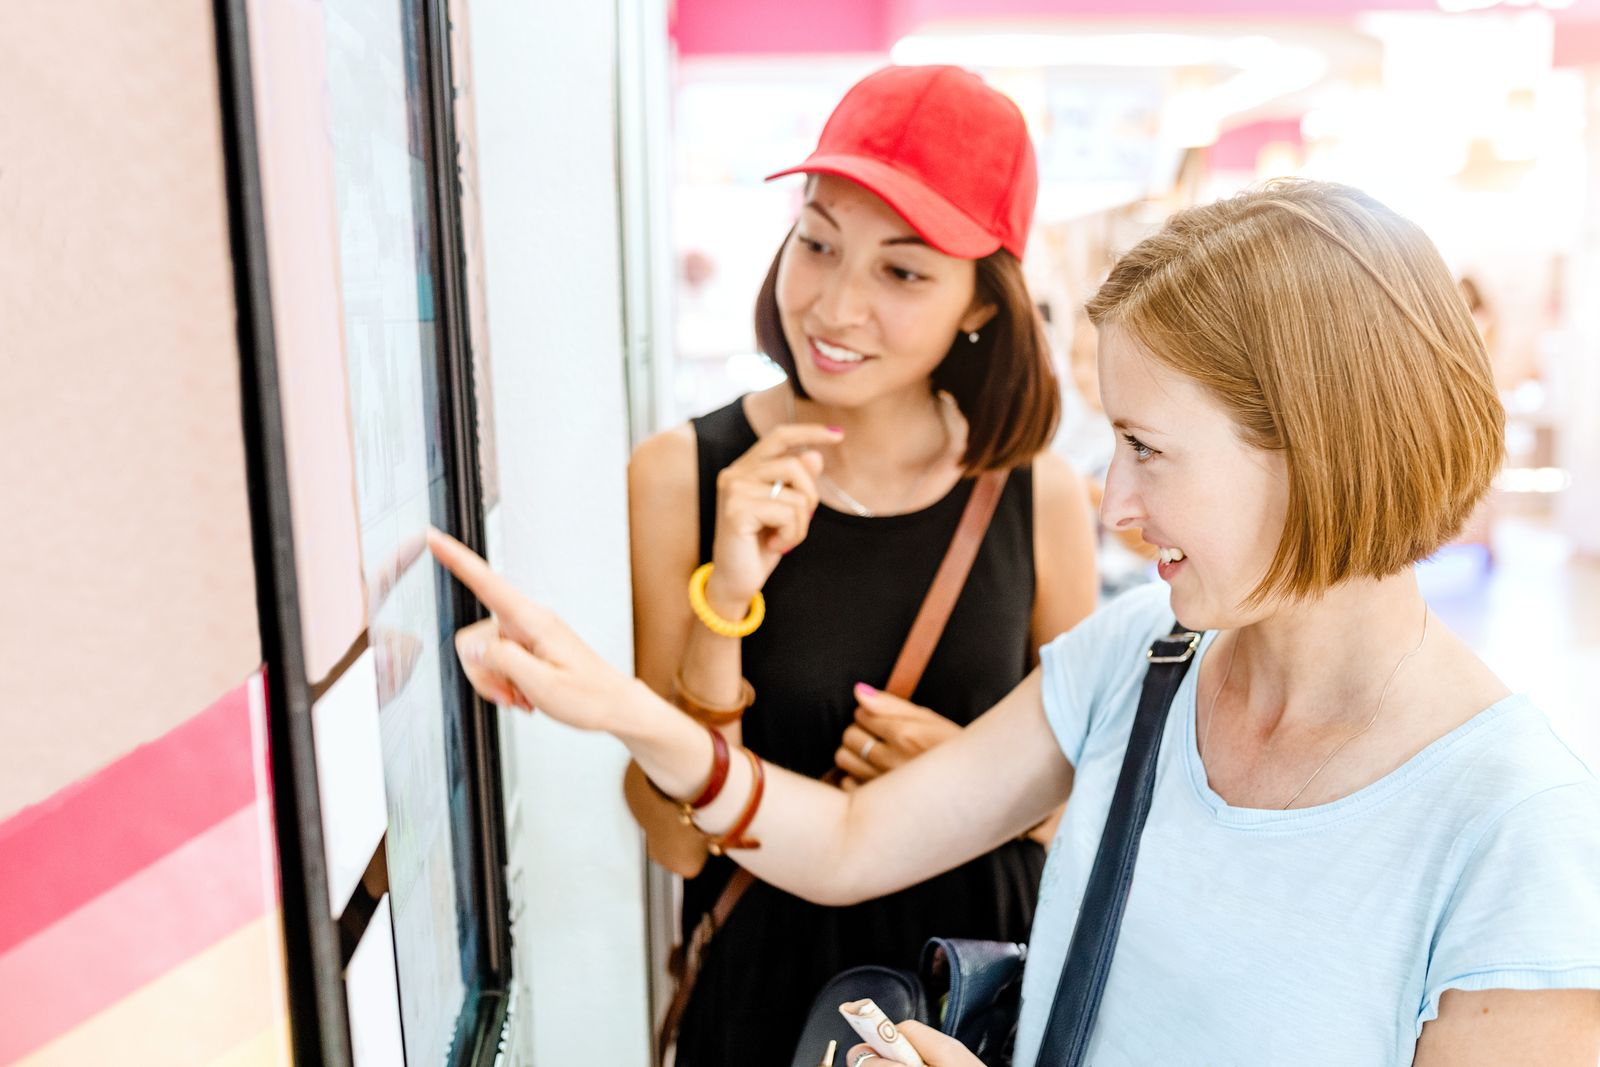 Two friends woman using automated self-service machine with big digital touch screen. Modern techmology concept